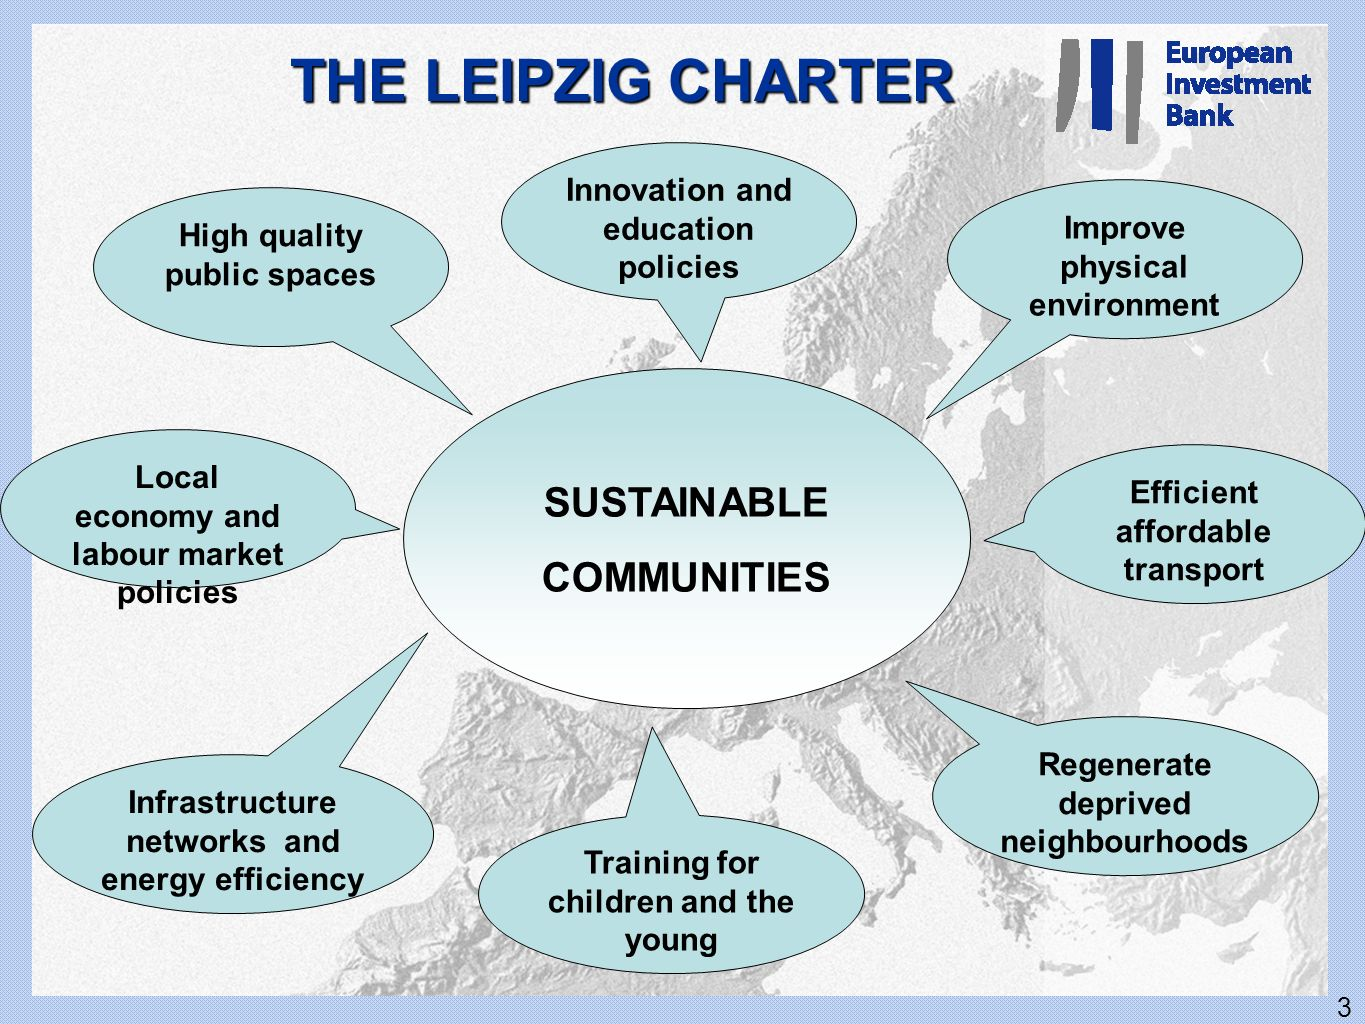 THE LEIPZIG CHARTER SUSTAINABLE COMMUNITIES